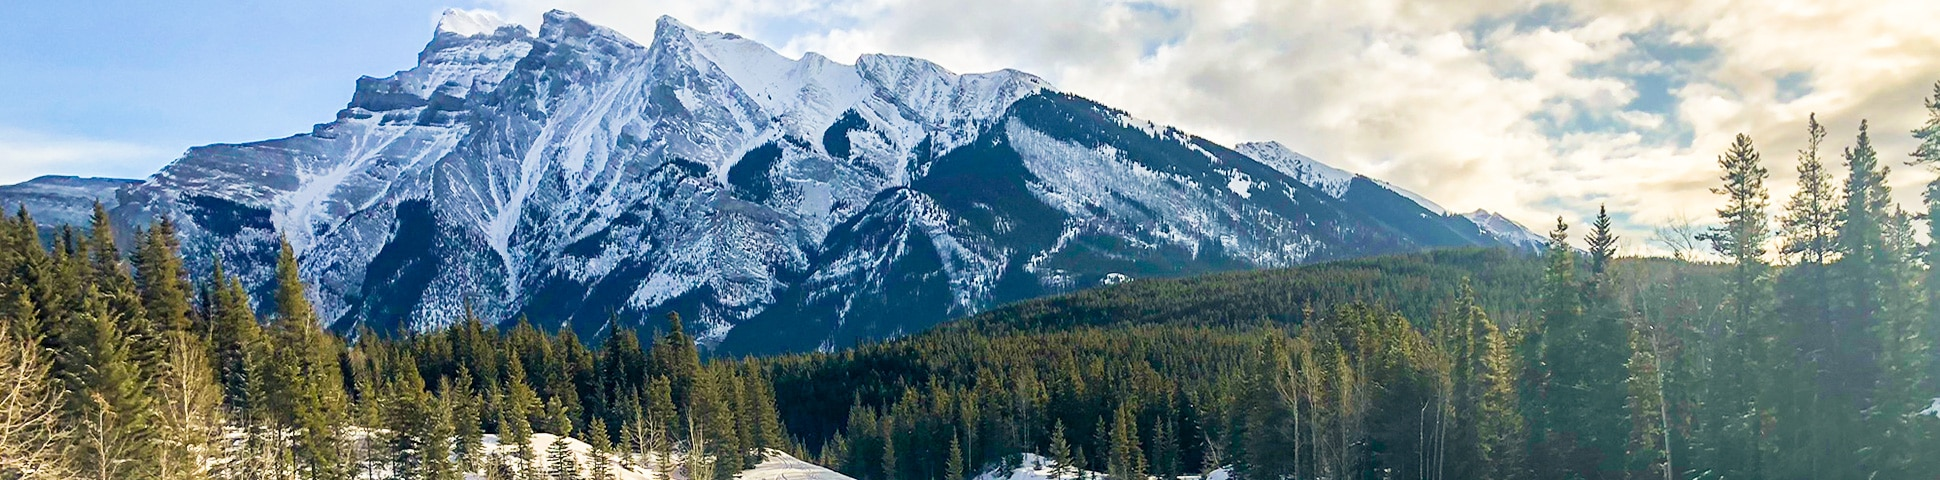 Panorama of Cascade Valley XC ski trail in Banff National Park, Alberta